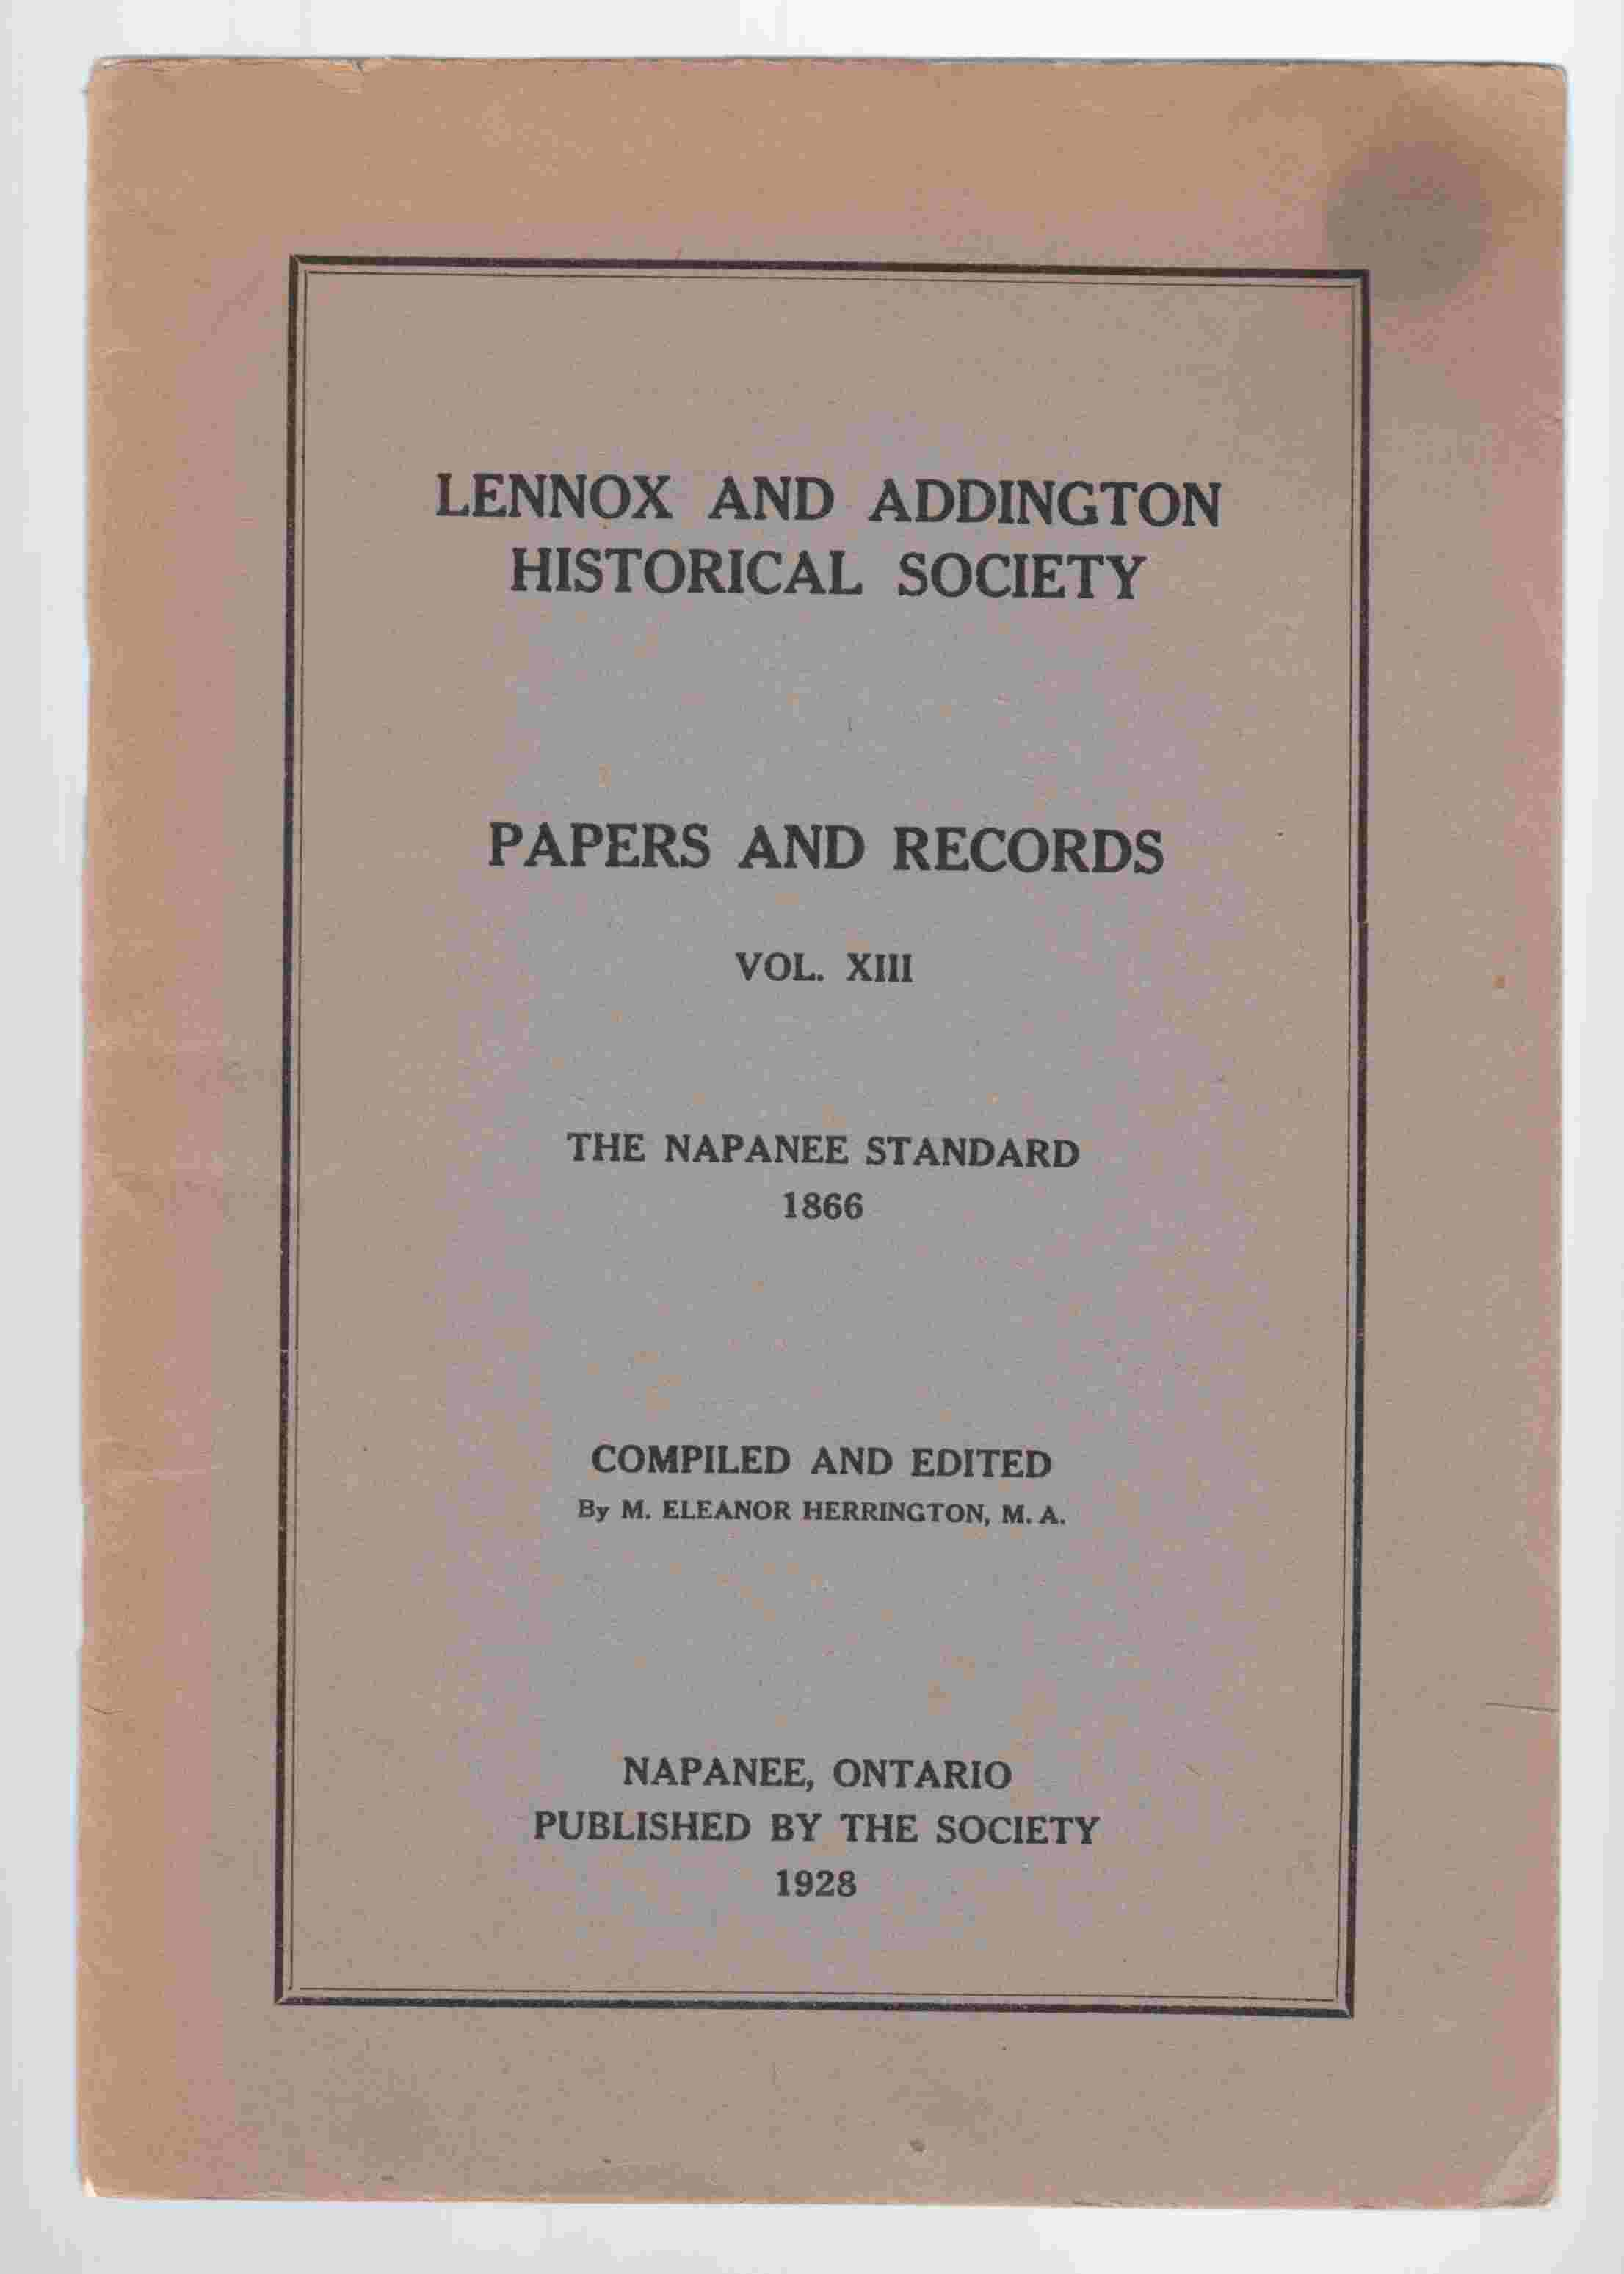 Image for Lennox and Addington Historical Society Papers and Records Vol. XII The Napanee Standard 1866